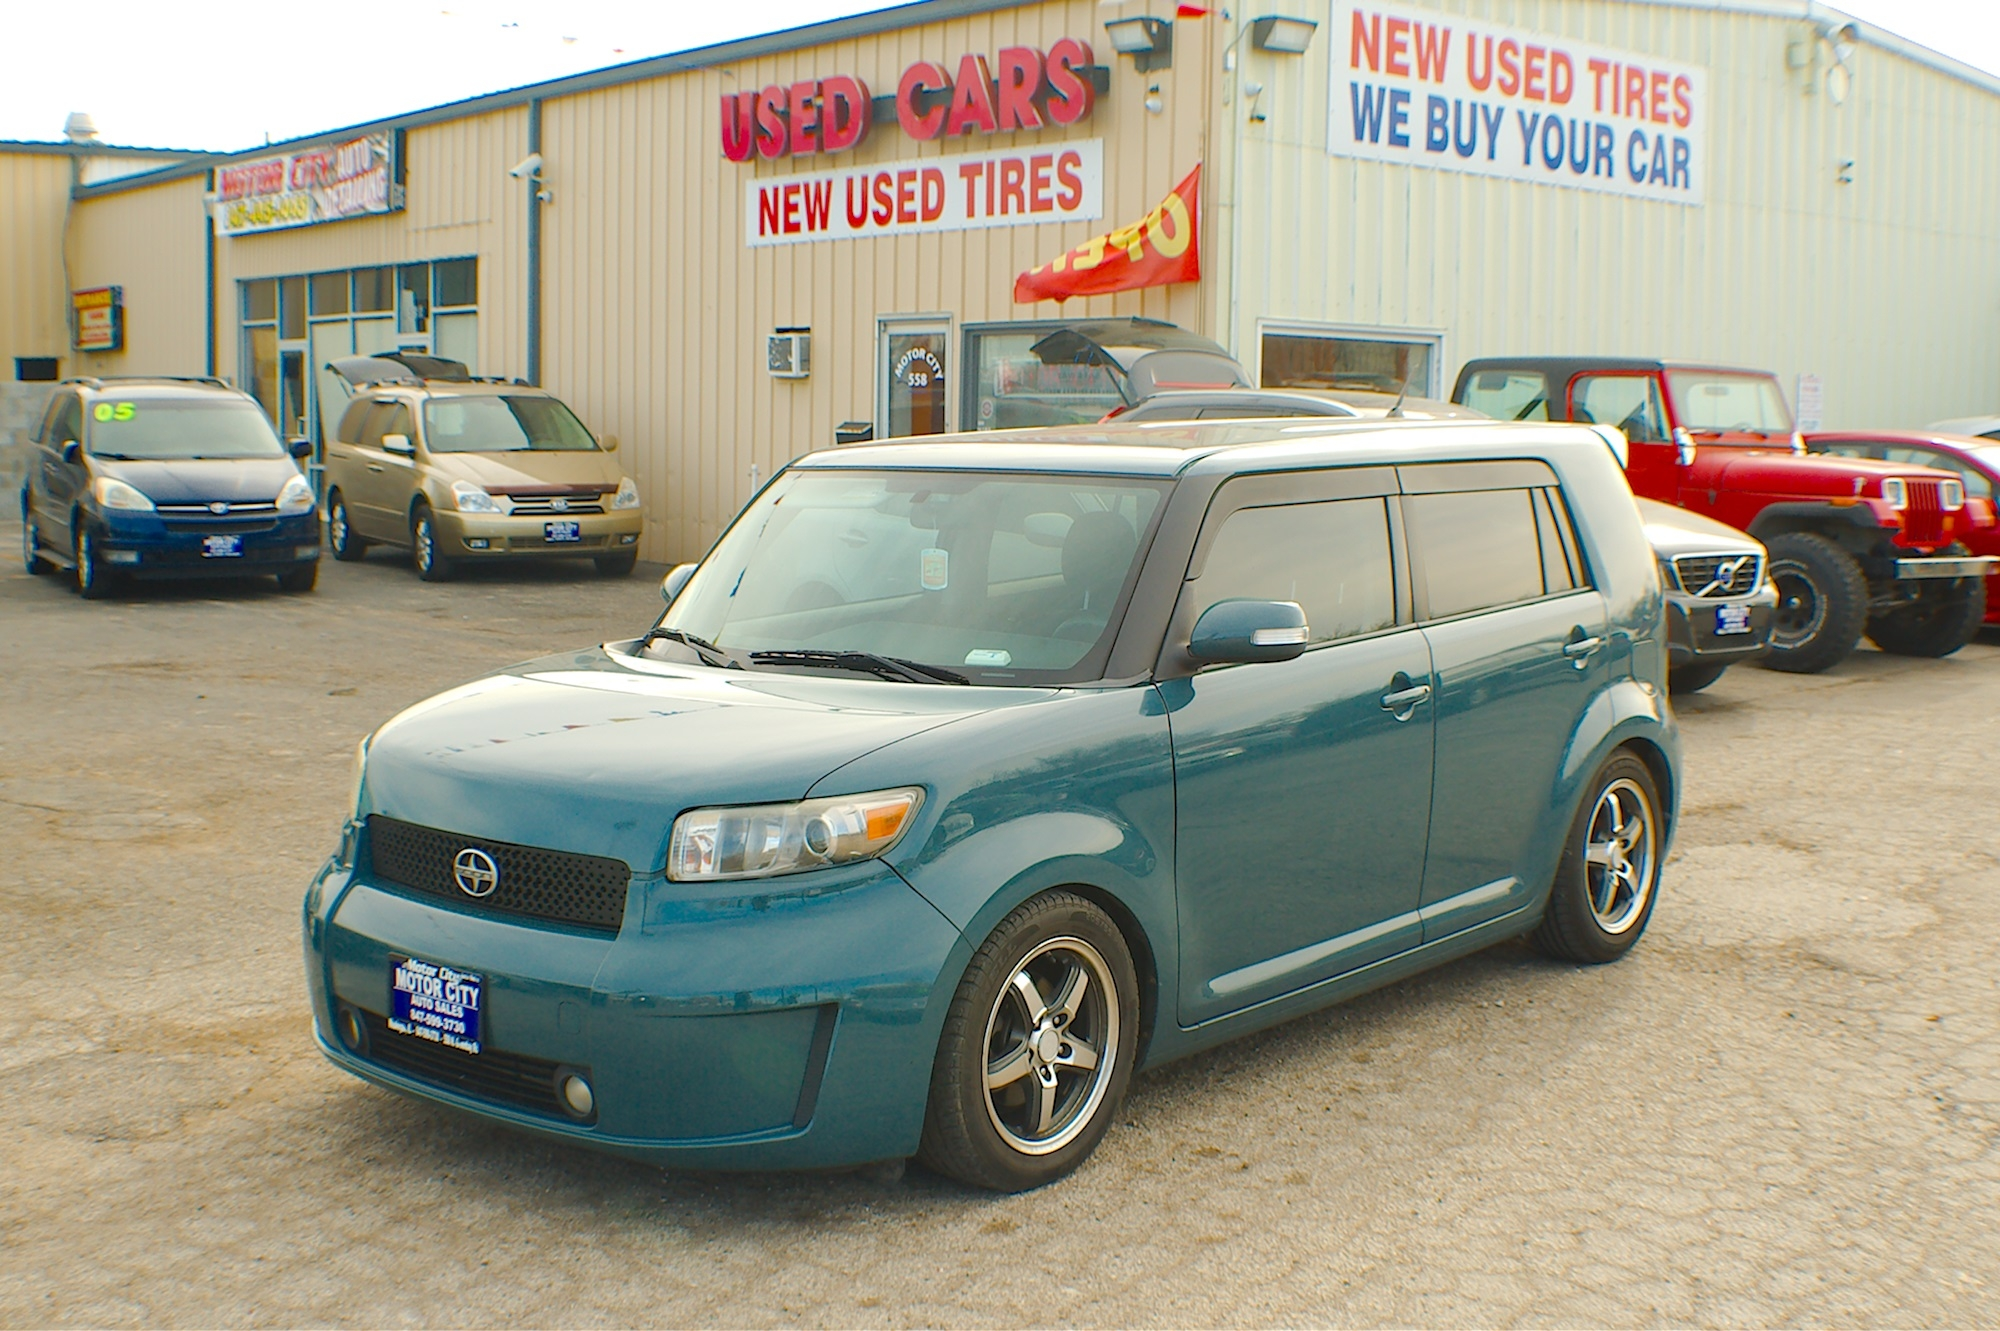 2008 Scion XB Teal Sedan used car Sale Antioch Zion Waukegan Lake County Illinois